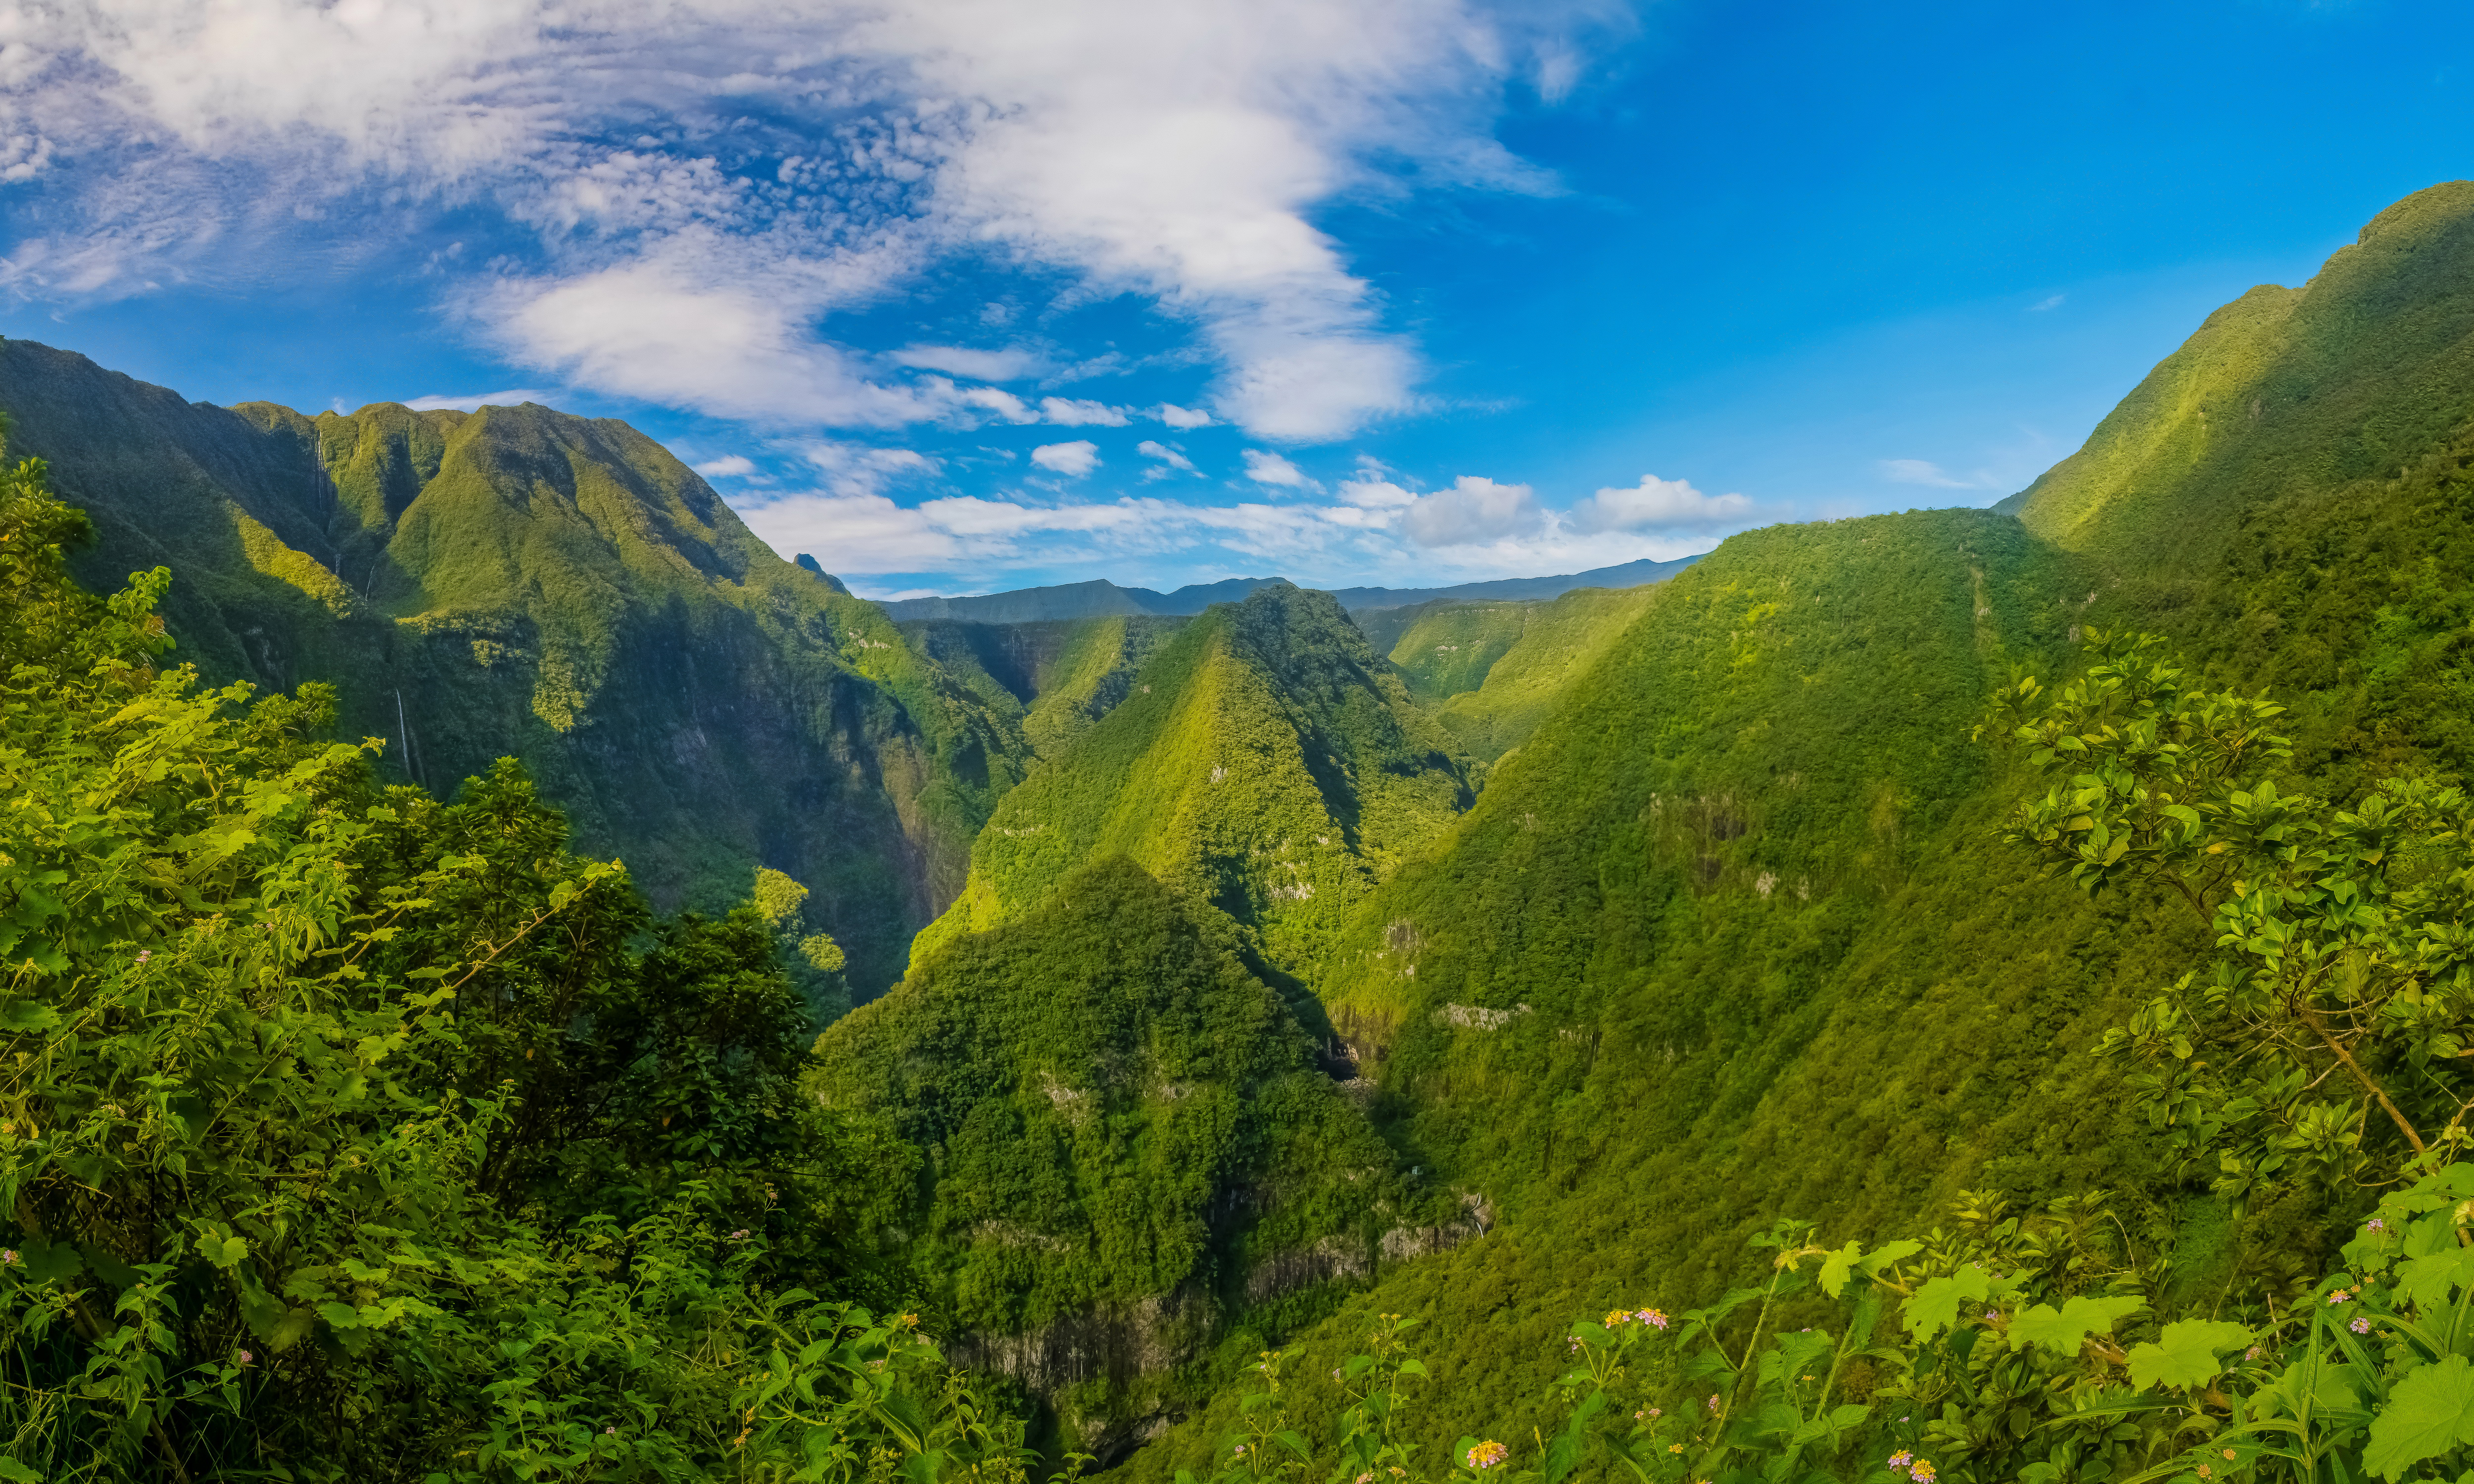 Green Mountains In France 4k Ultra Hd Wallpaper Background